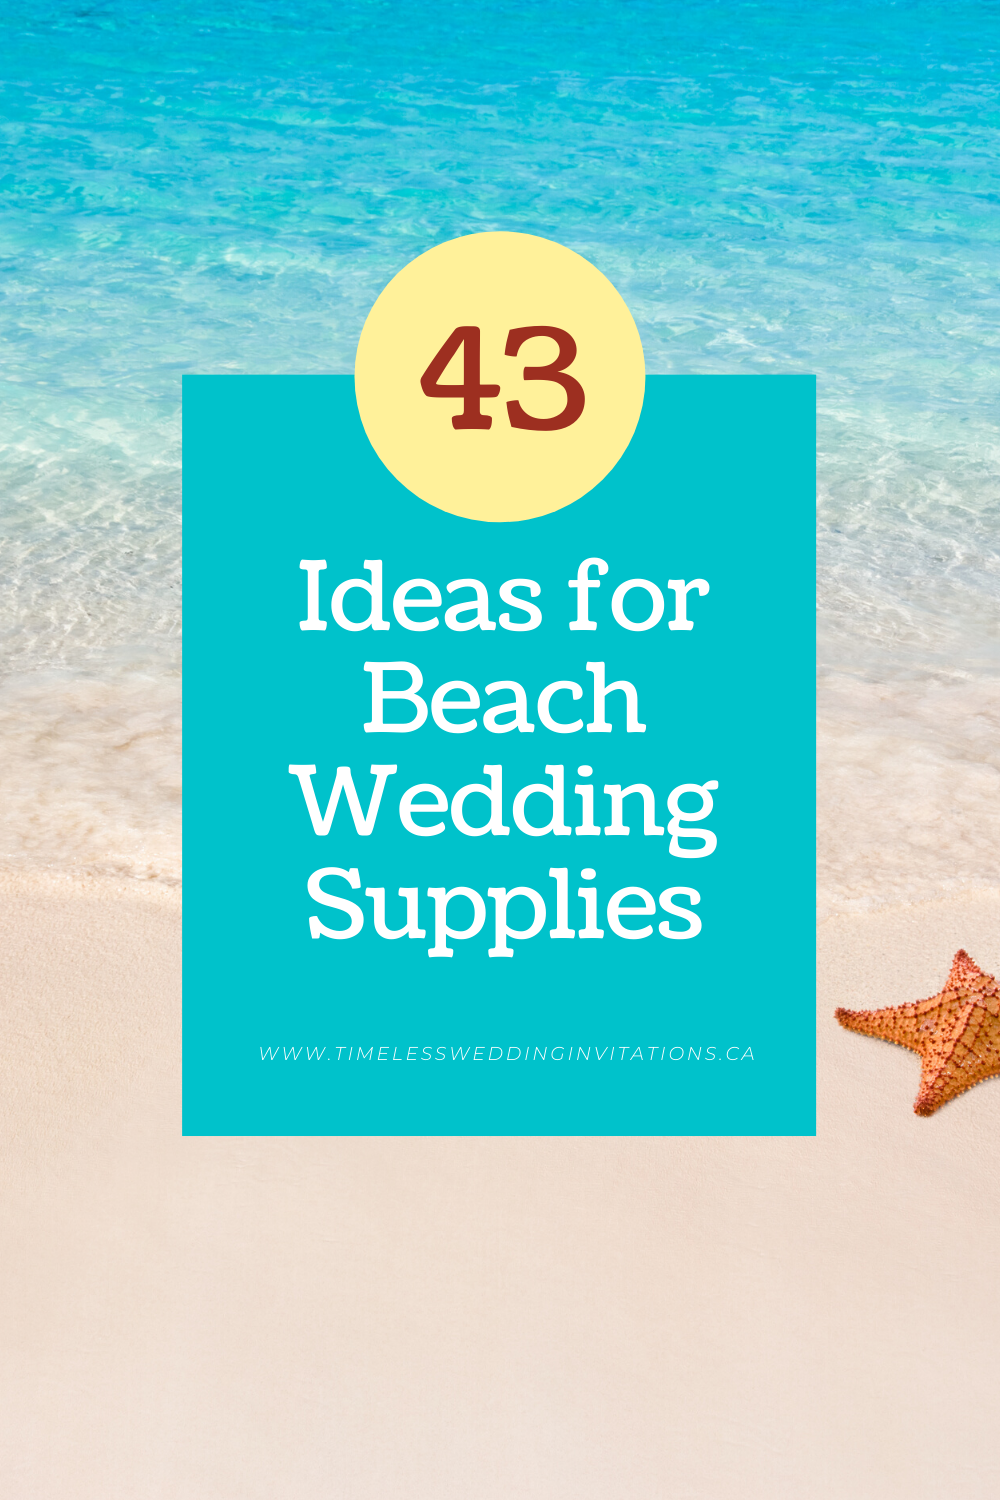 43 Ideas for Beach Wedding Supplies